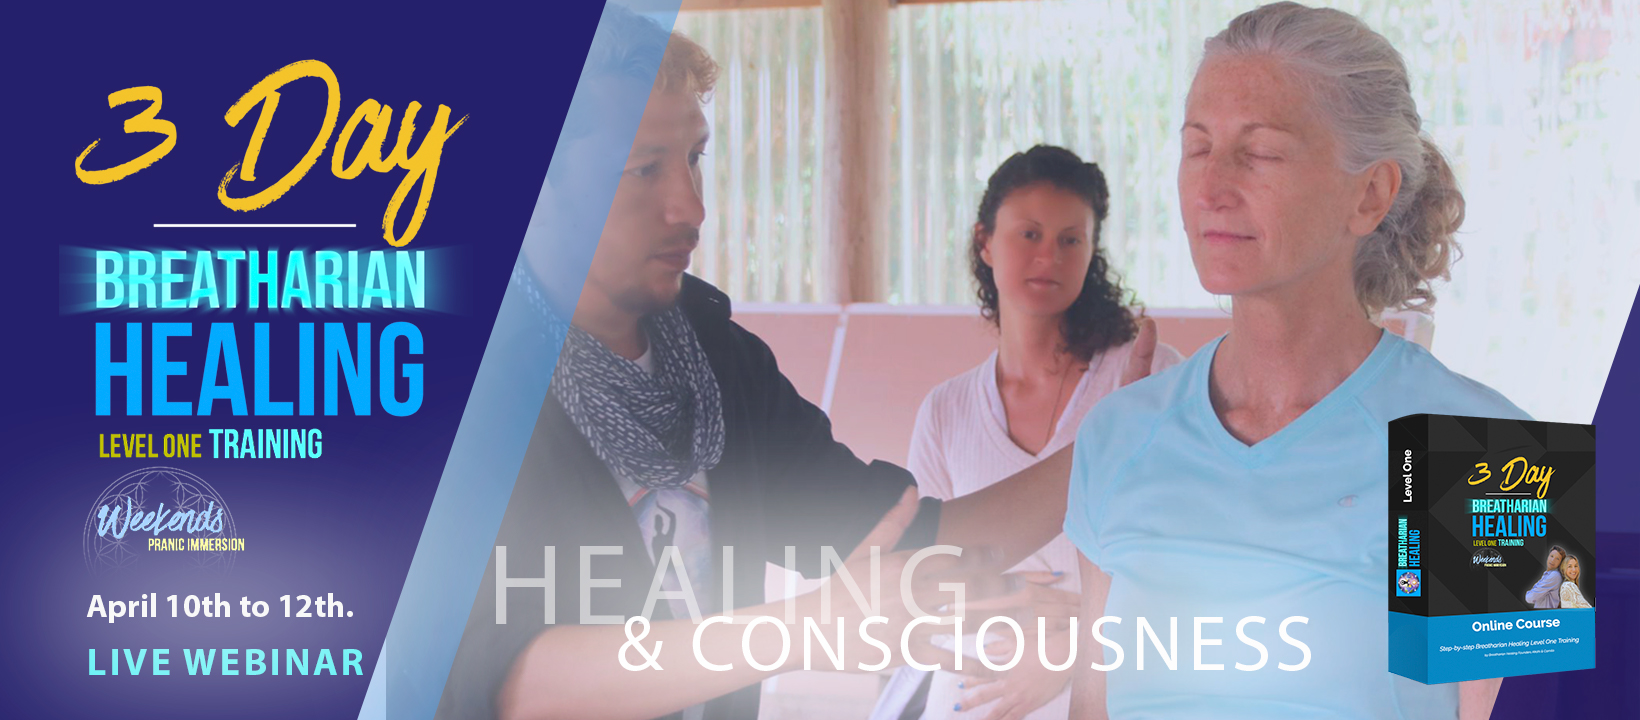 3 Day Breatharian Healing Training